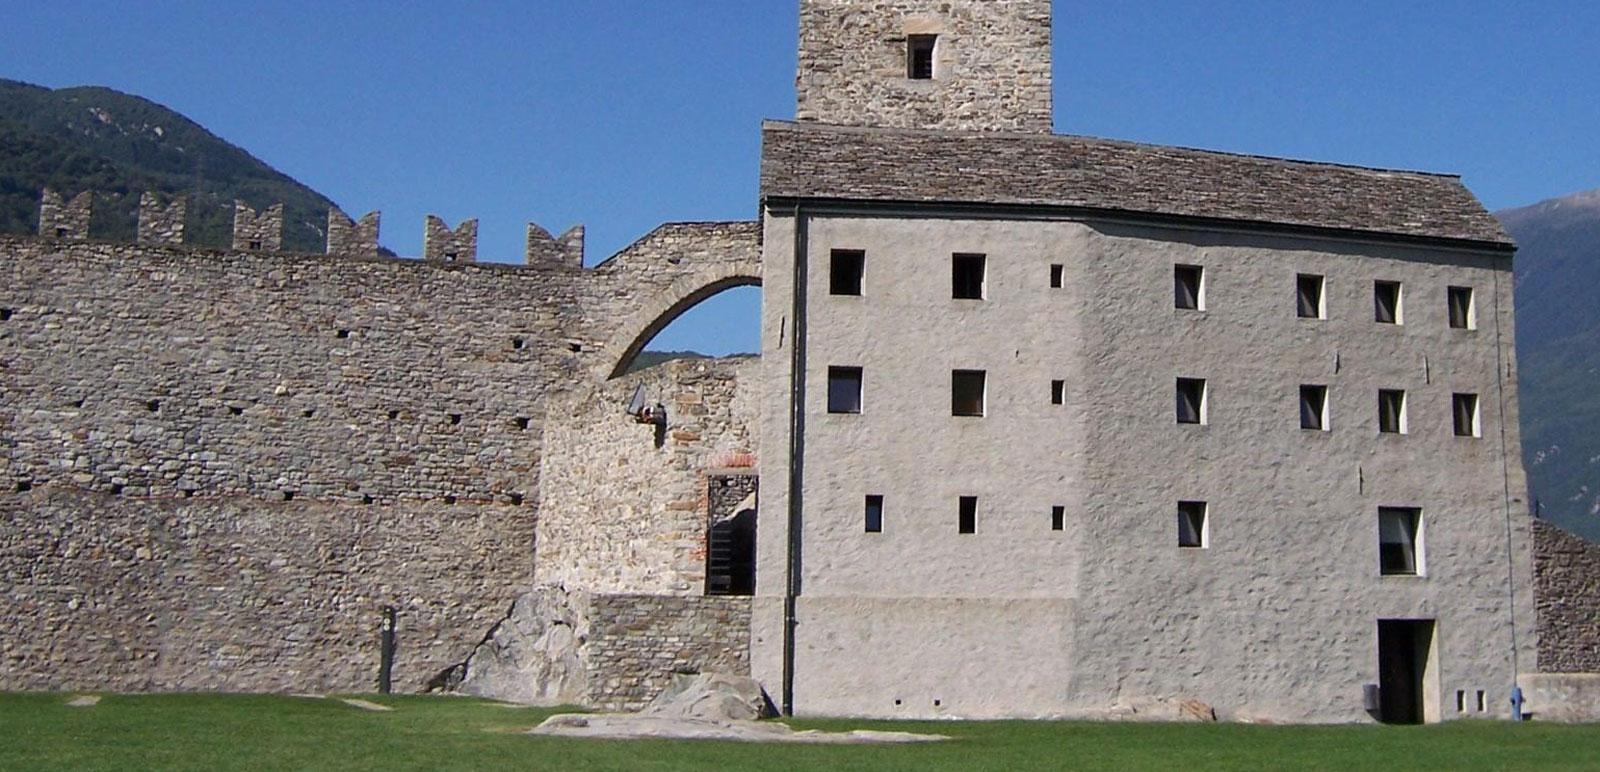 Burg in Bellinzona